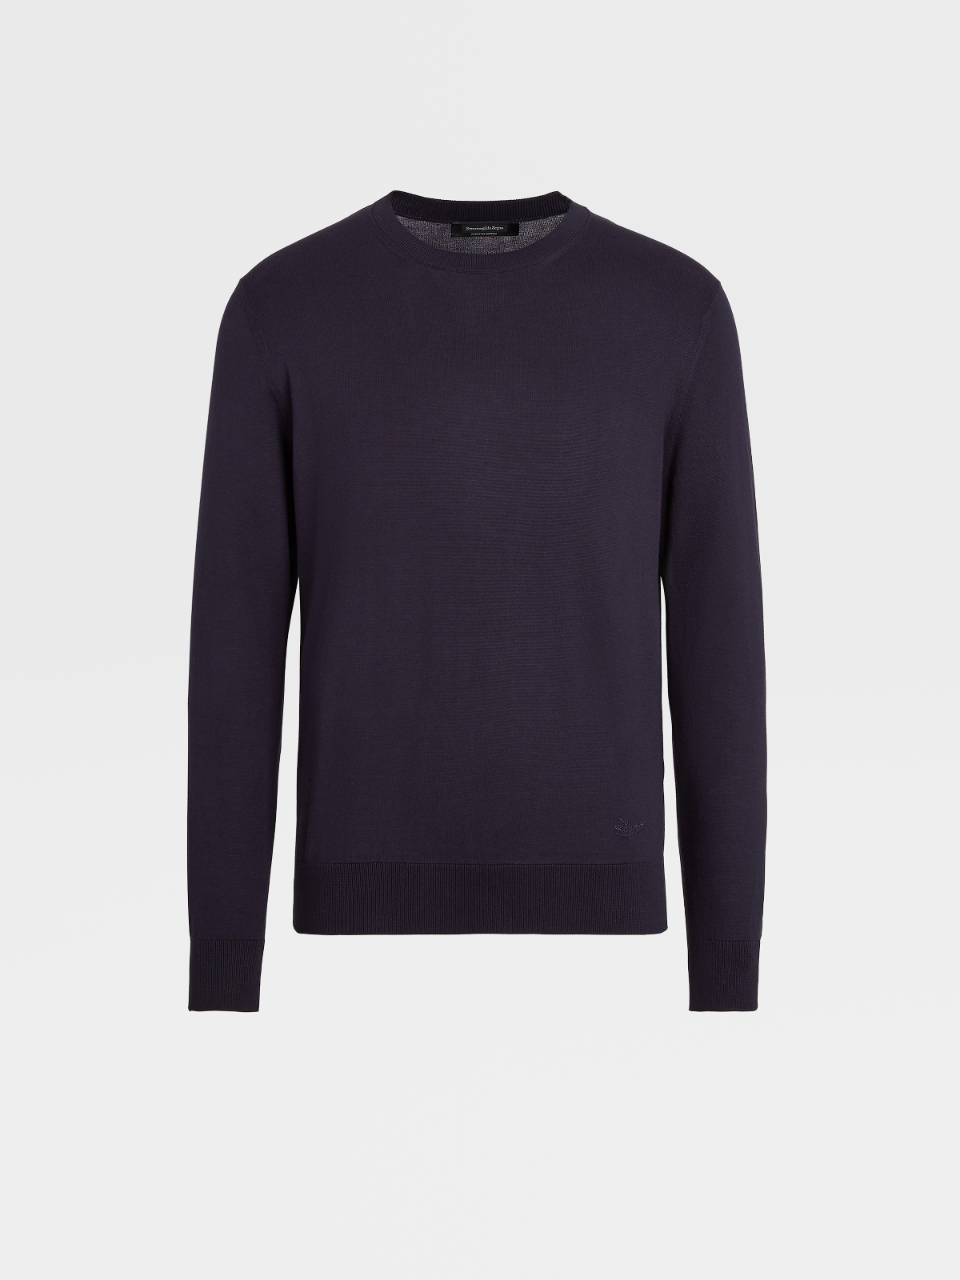 Premium Cotton Knit Crewneck